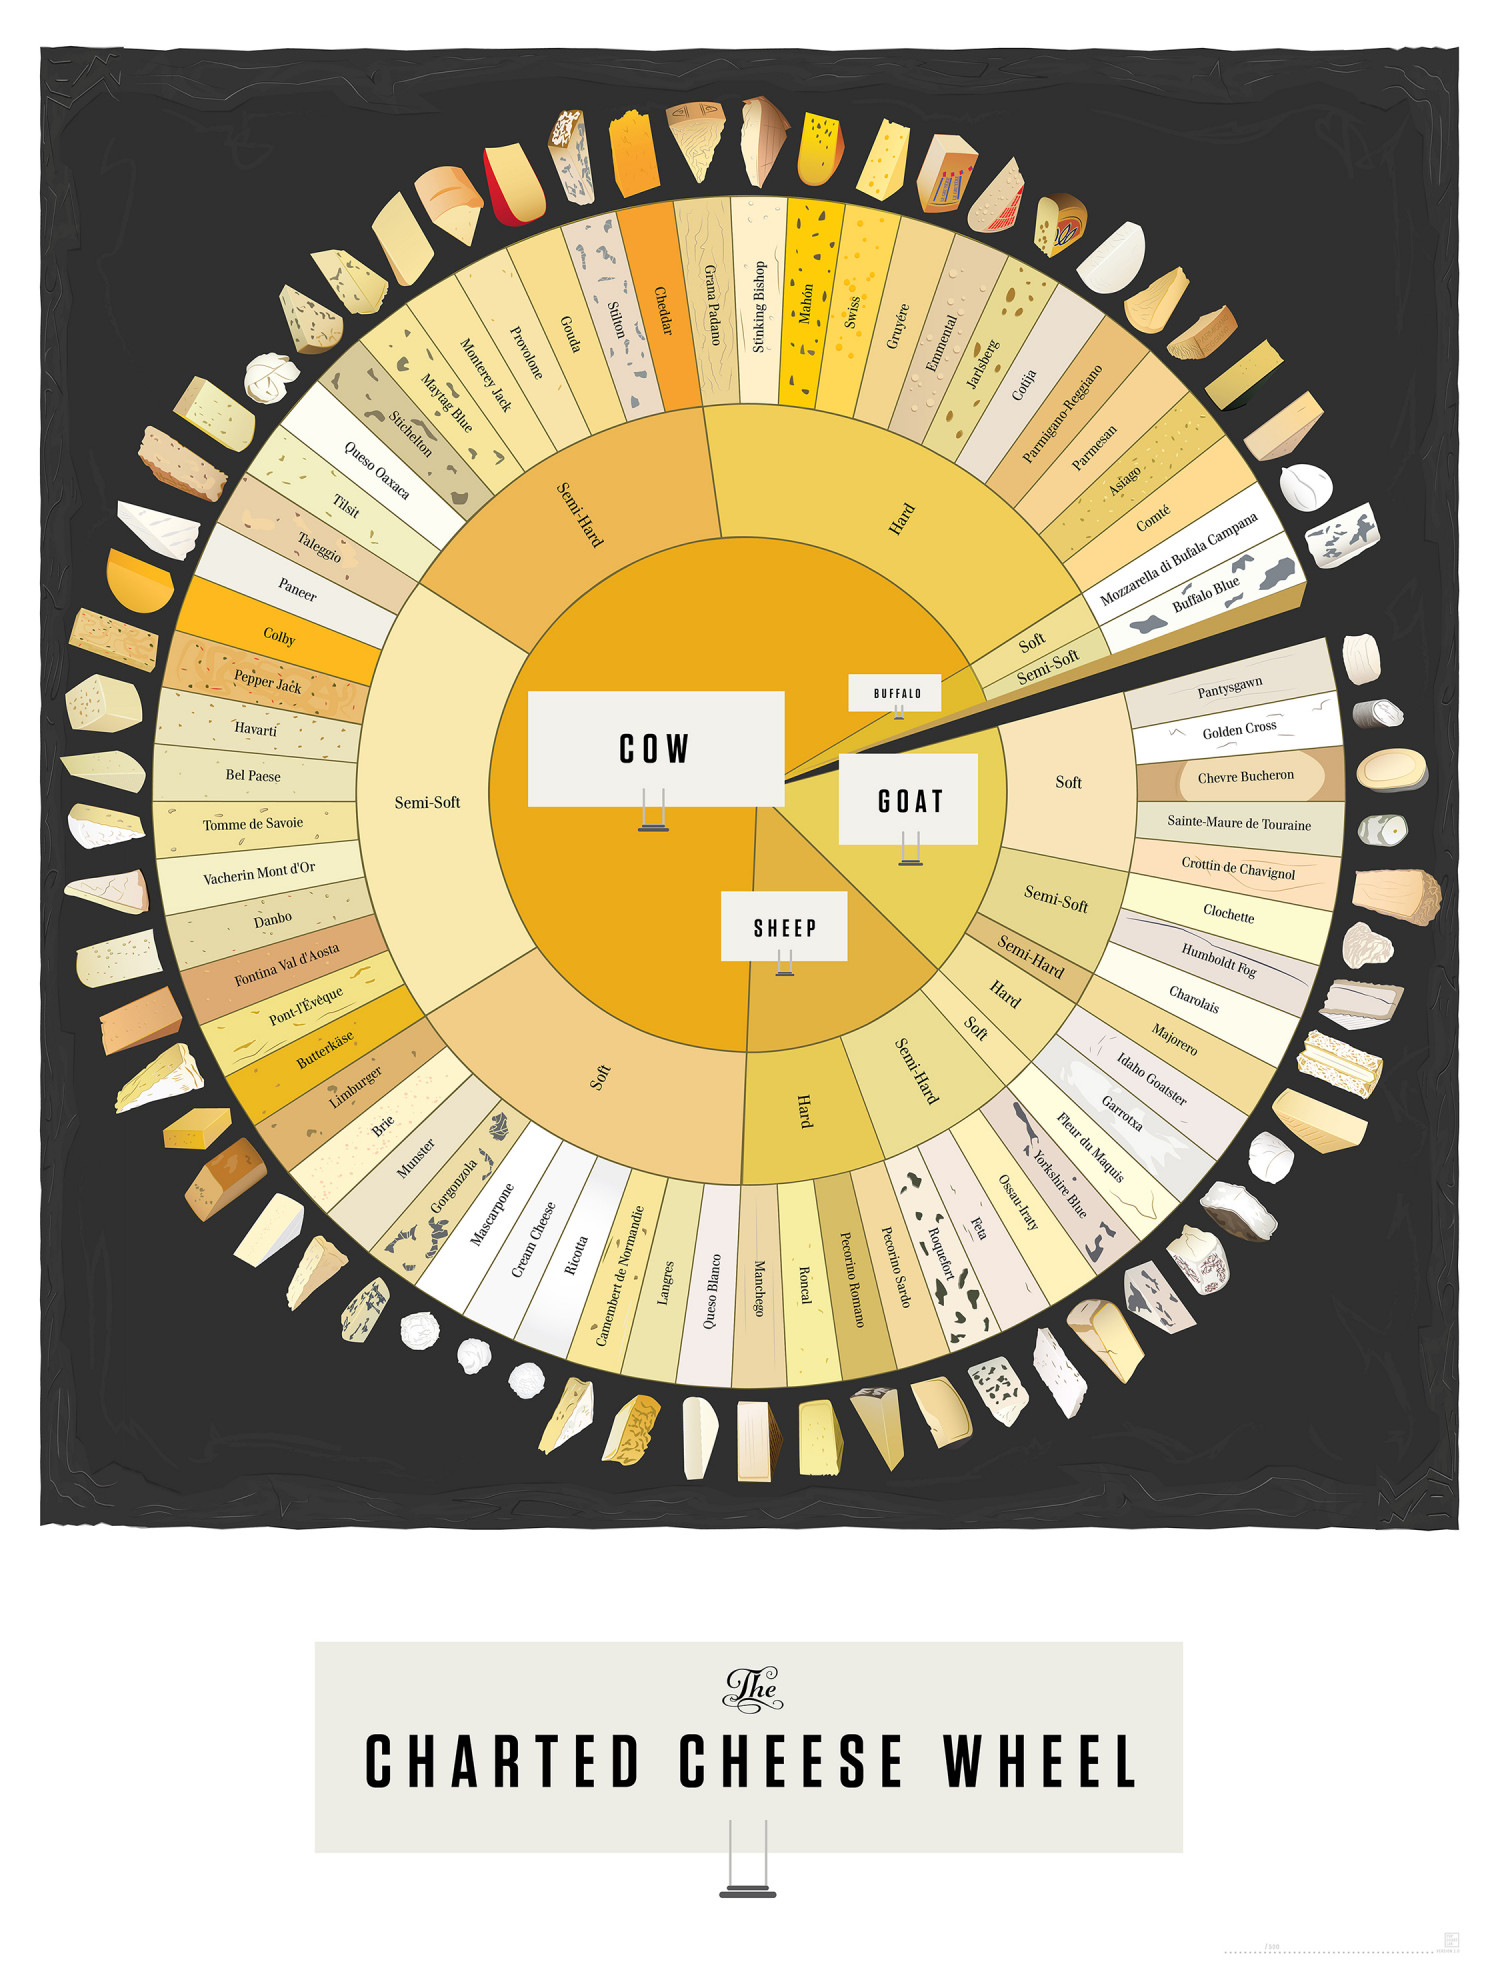 The Charted Cheese Wheel Infographic